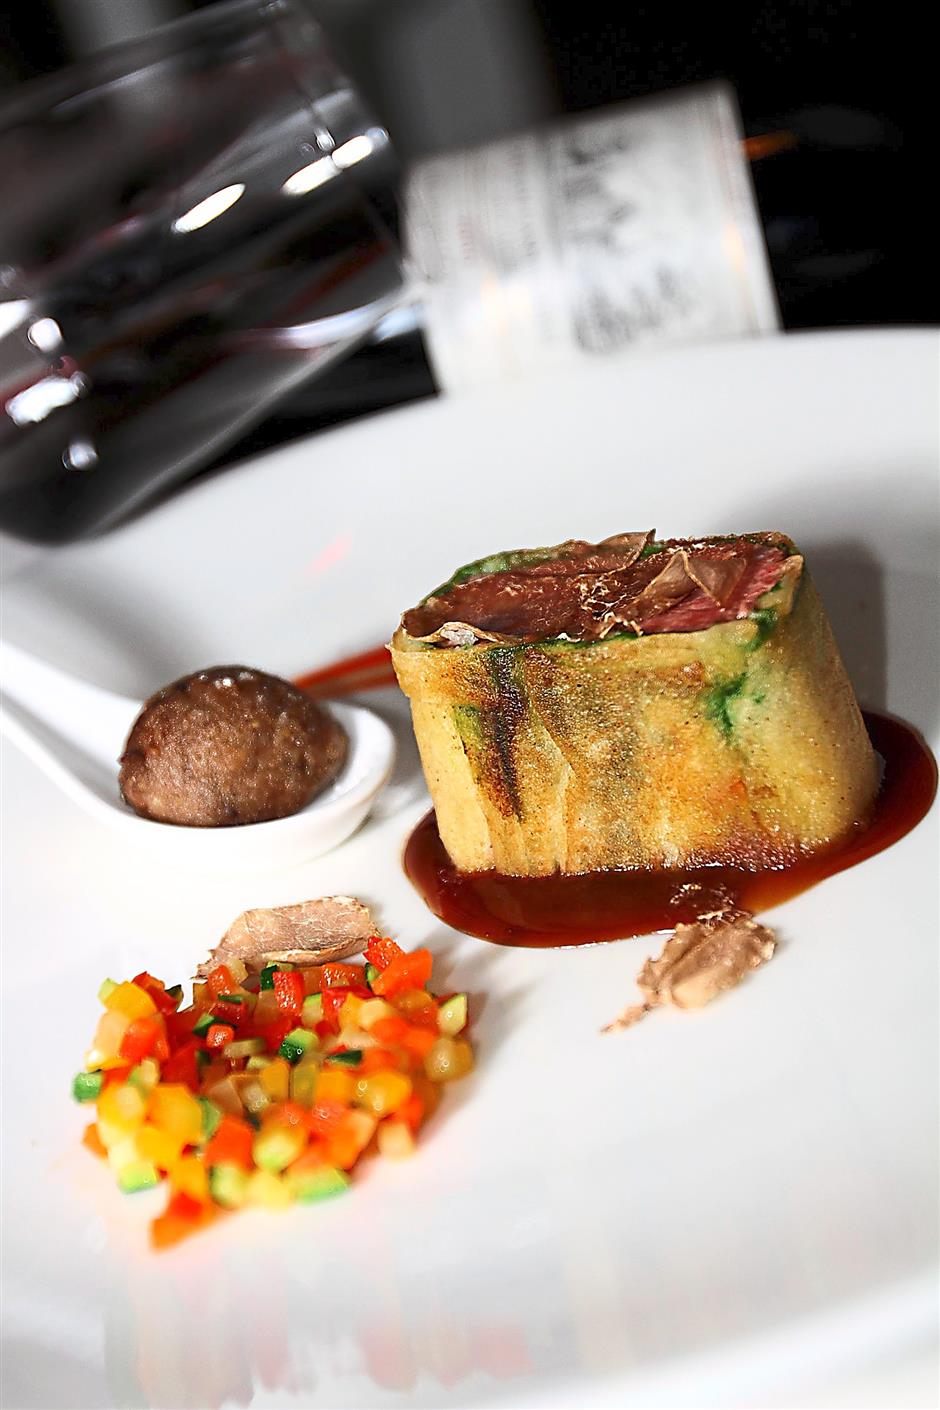 Highlight of the evening: The Lamb Loin in Bread Crust served with rosemary jus, ratatouille, baked eggplant praline served,with a glass of 2000 Chteau Cantemerle